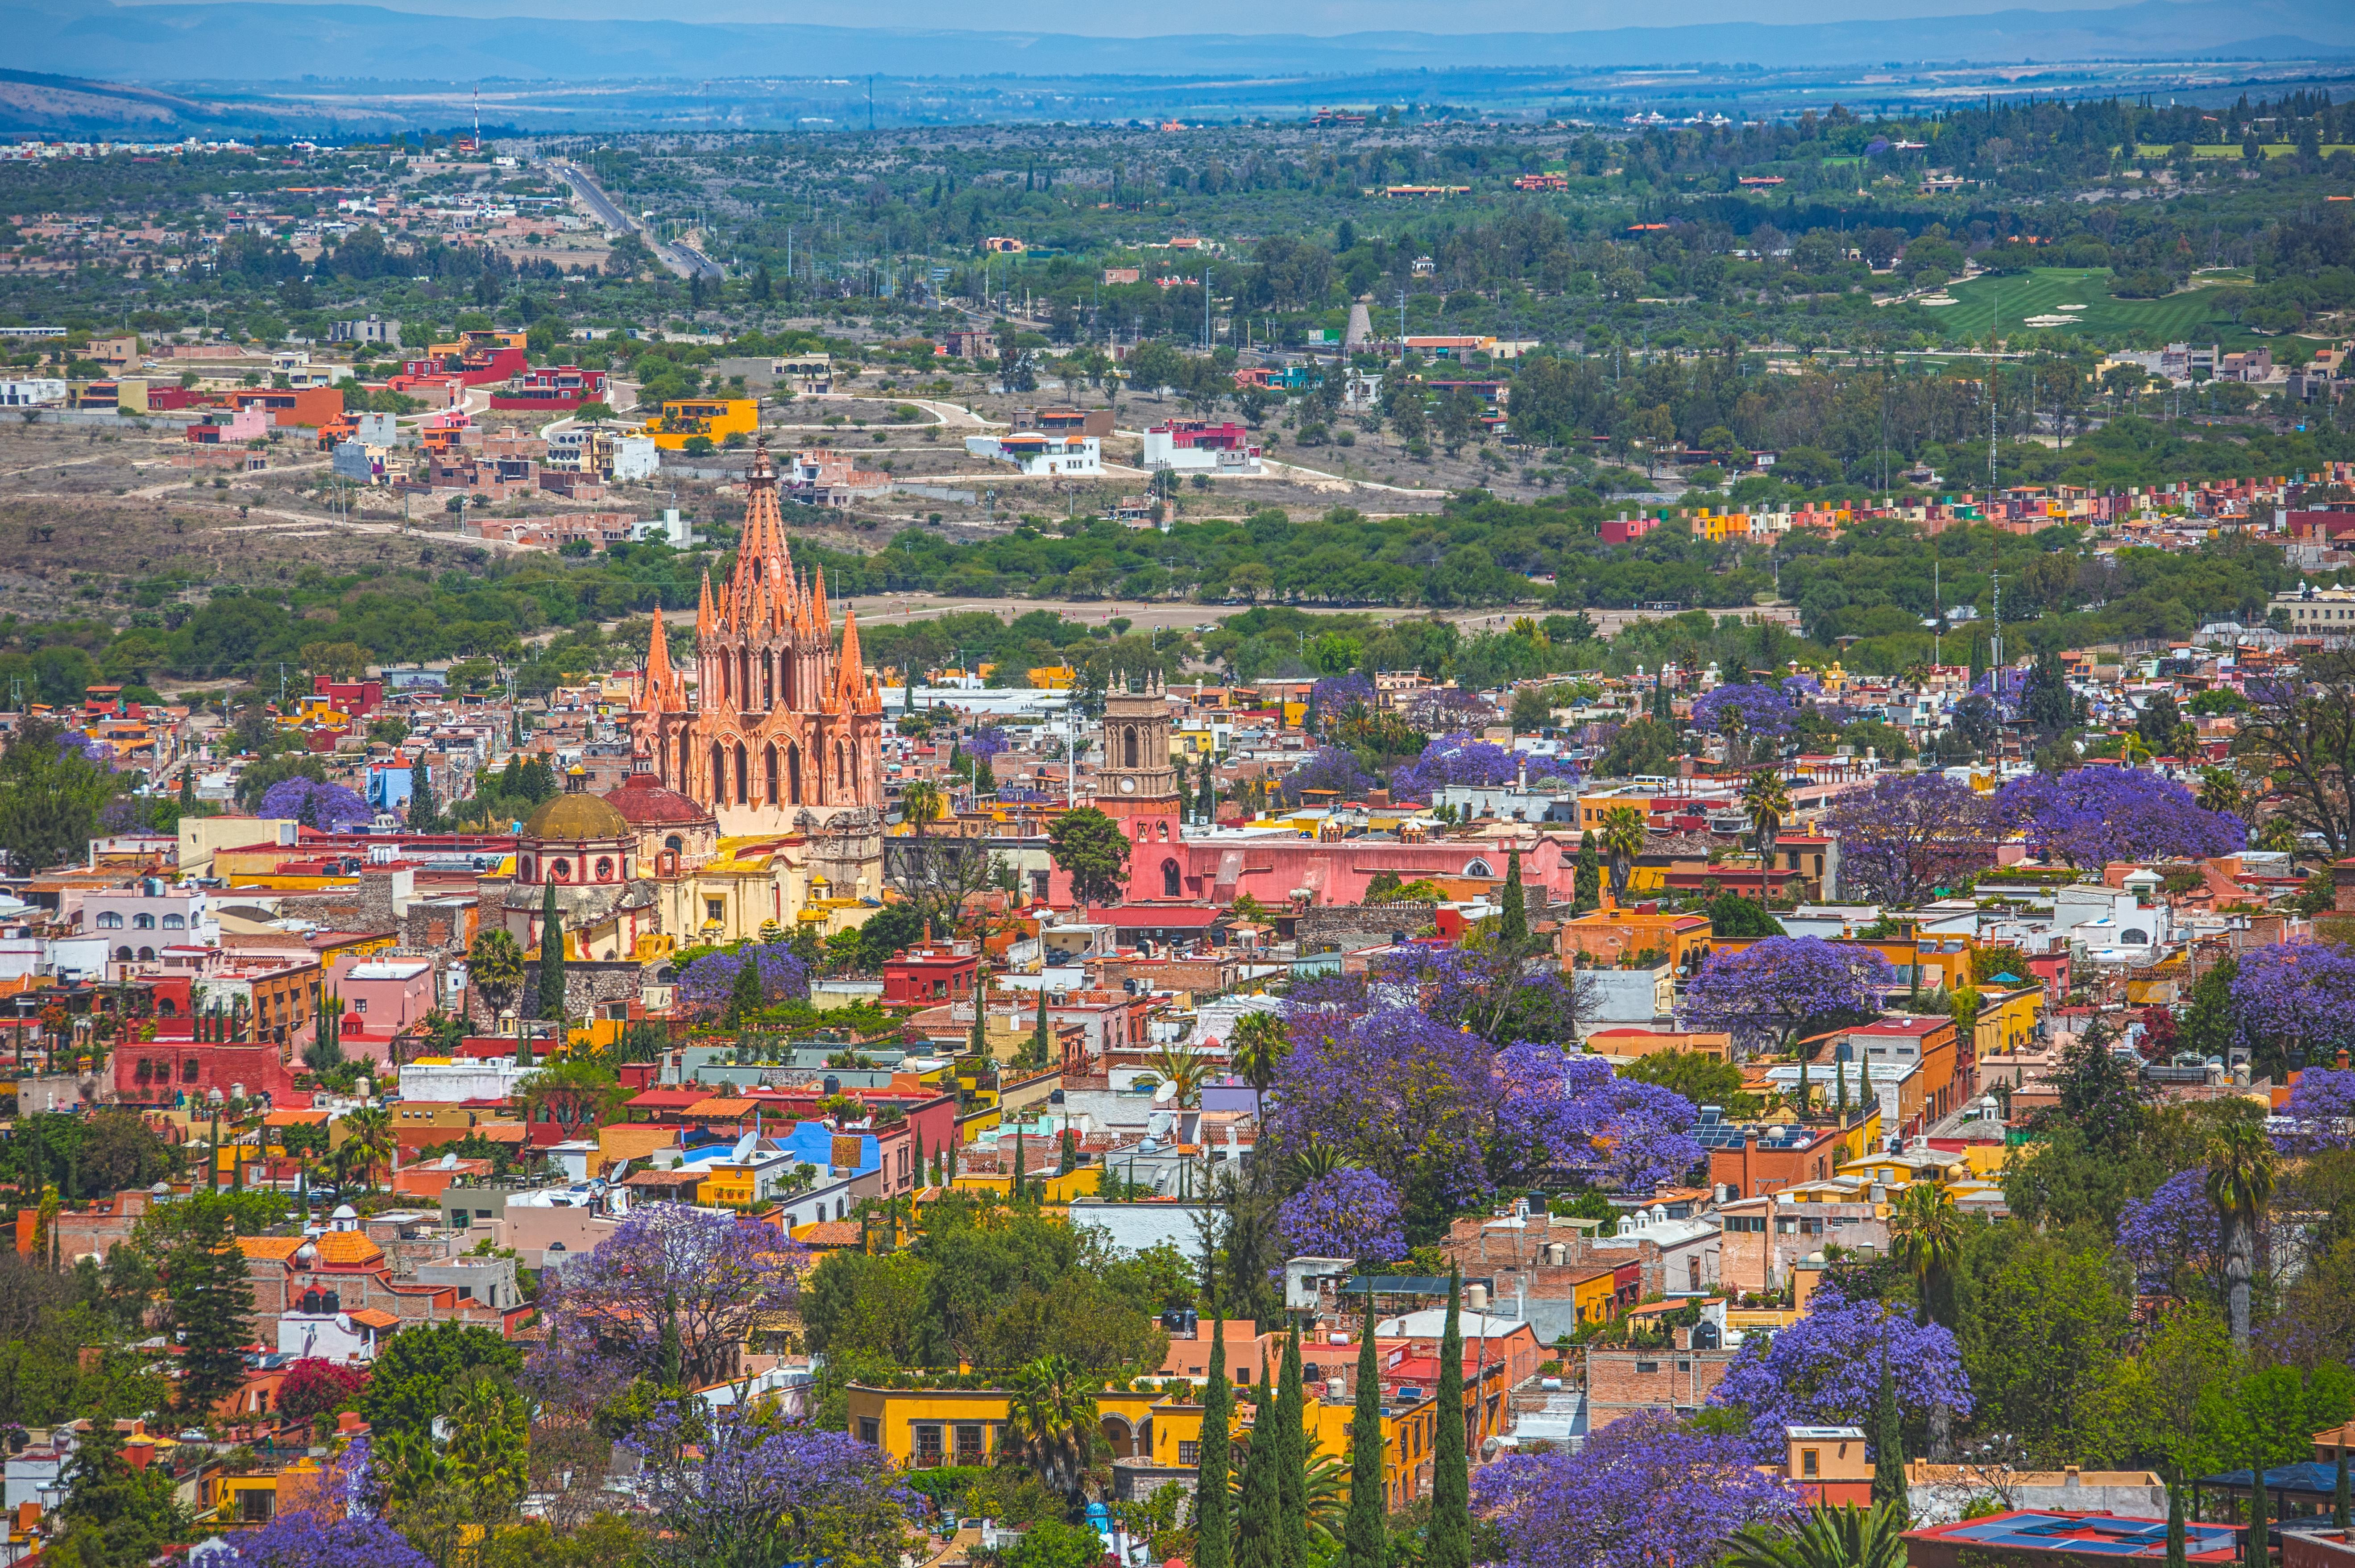 How to Spend 1 Day in San Miguel de Allende